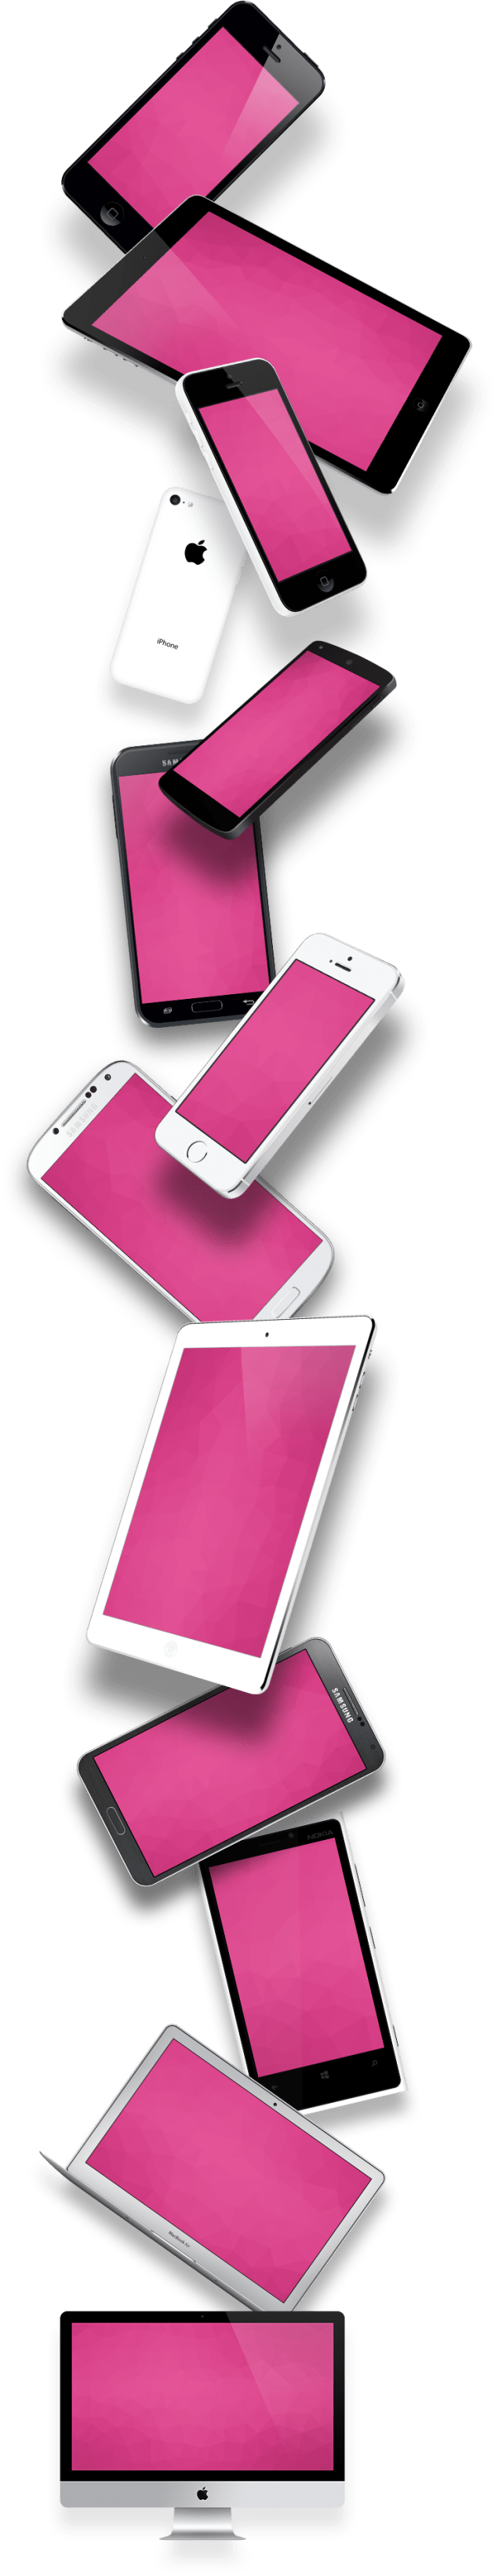 Mobile Devices (Mockups) PSD VECTOR